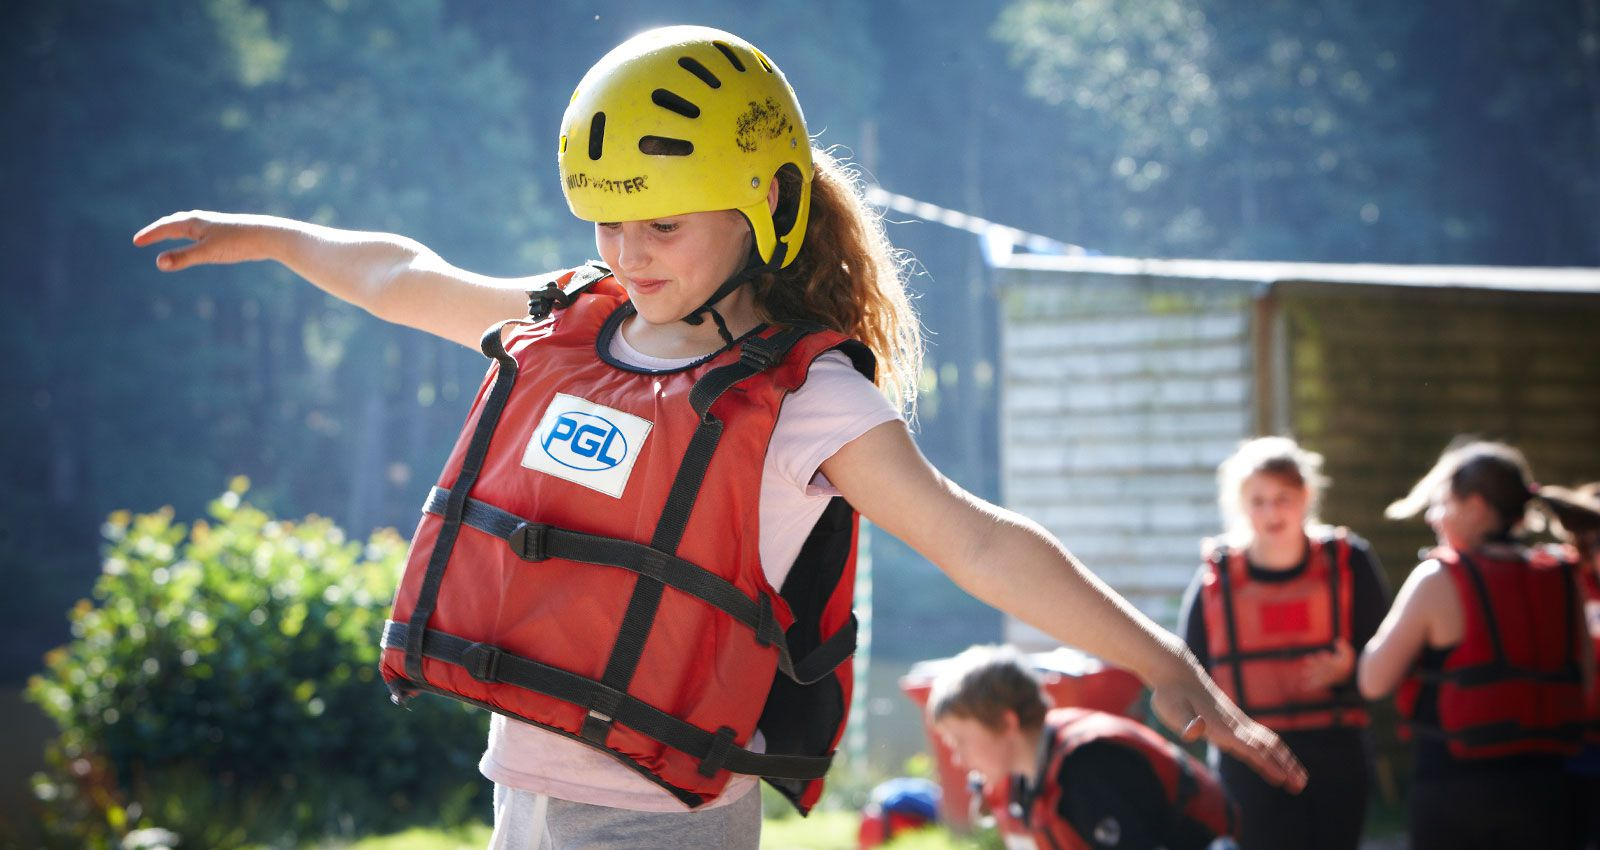 PGL Adventure Holidays - Specialist Holidays for 7-17 year olds across the UK and France - Action and Adventure - Mission Spy